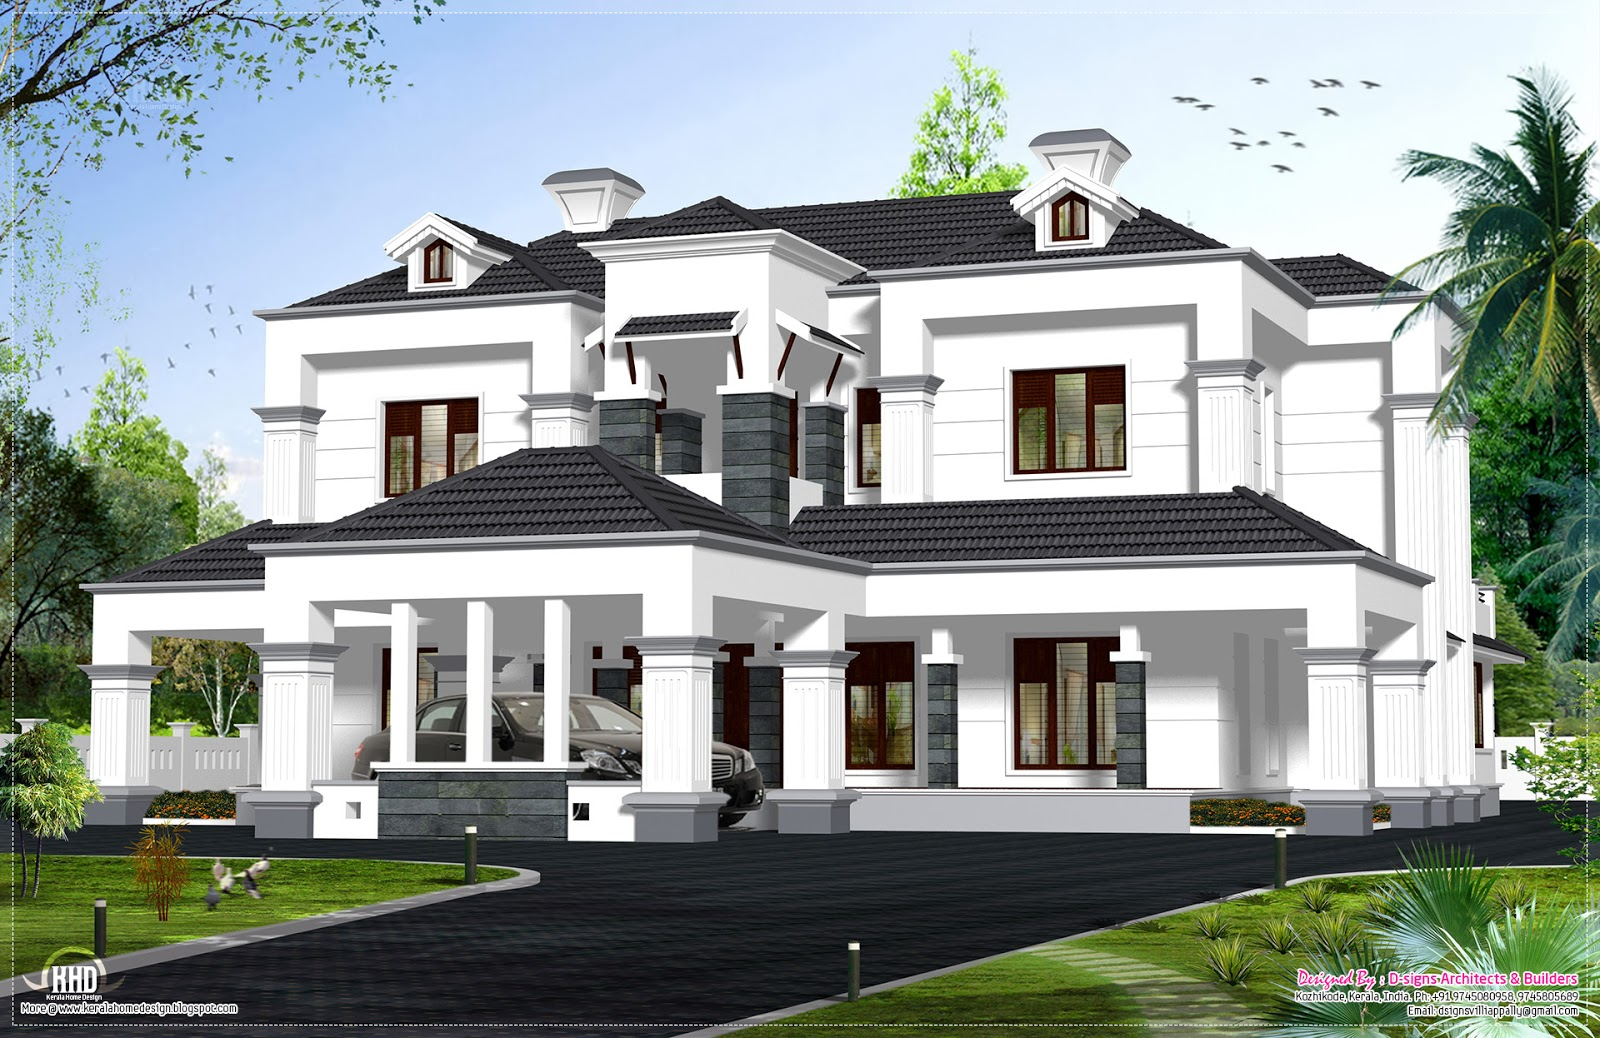 Victorian model house exterior kerala home design and for Model house design